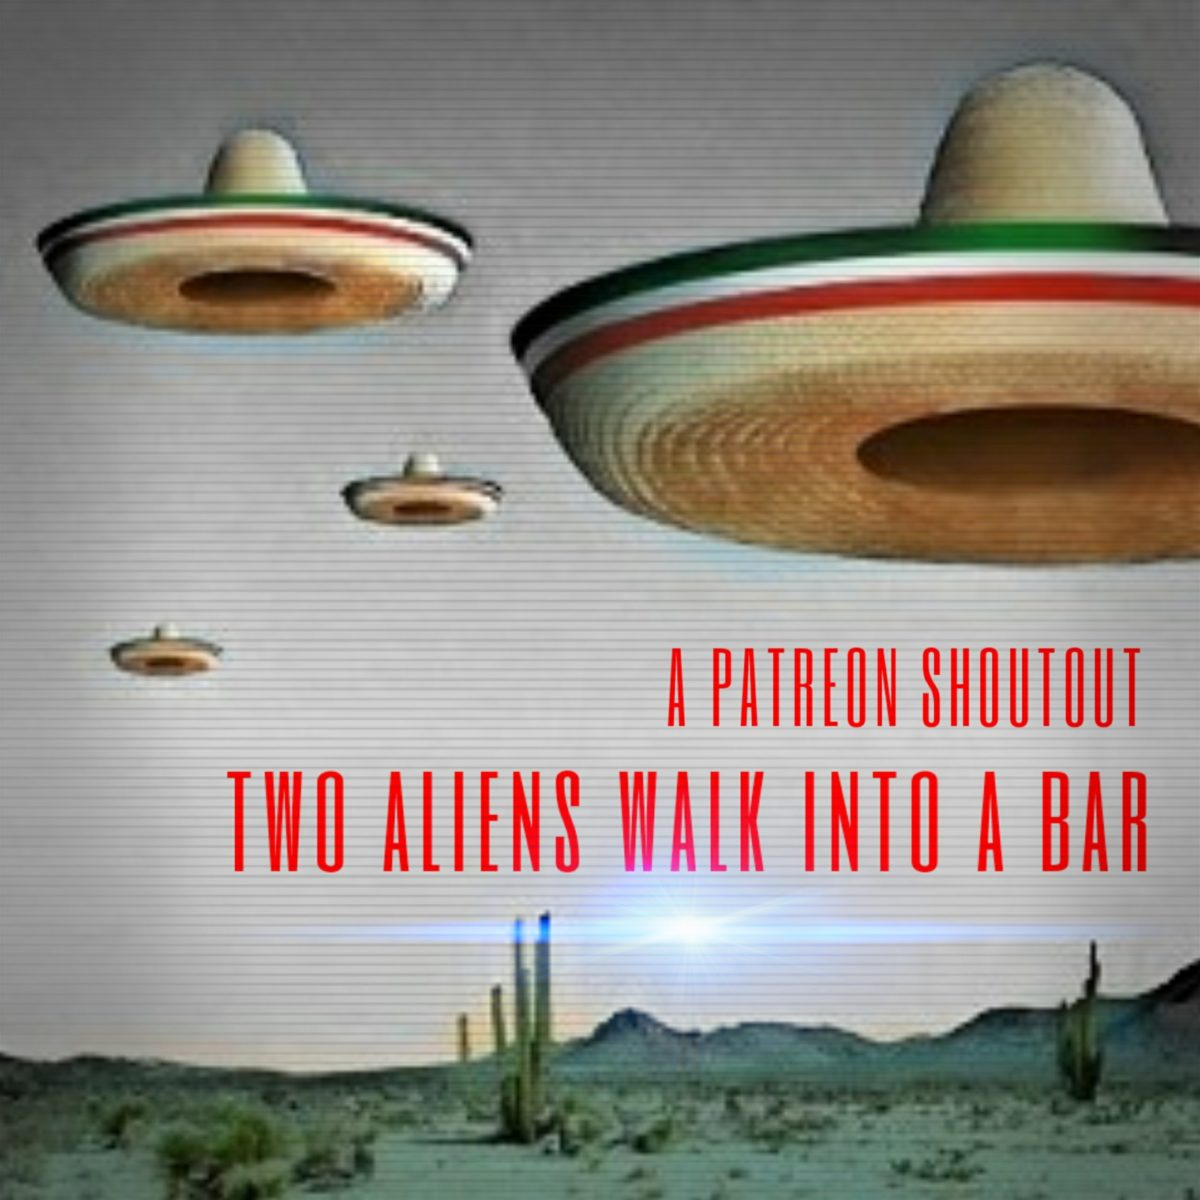 sofa king podcast patreon newport road shout out super especial show iv two aliens walk